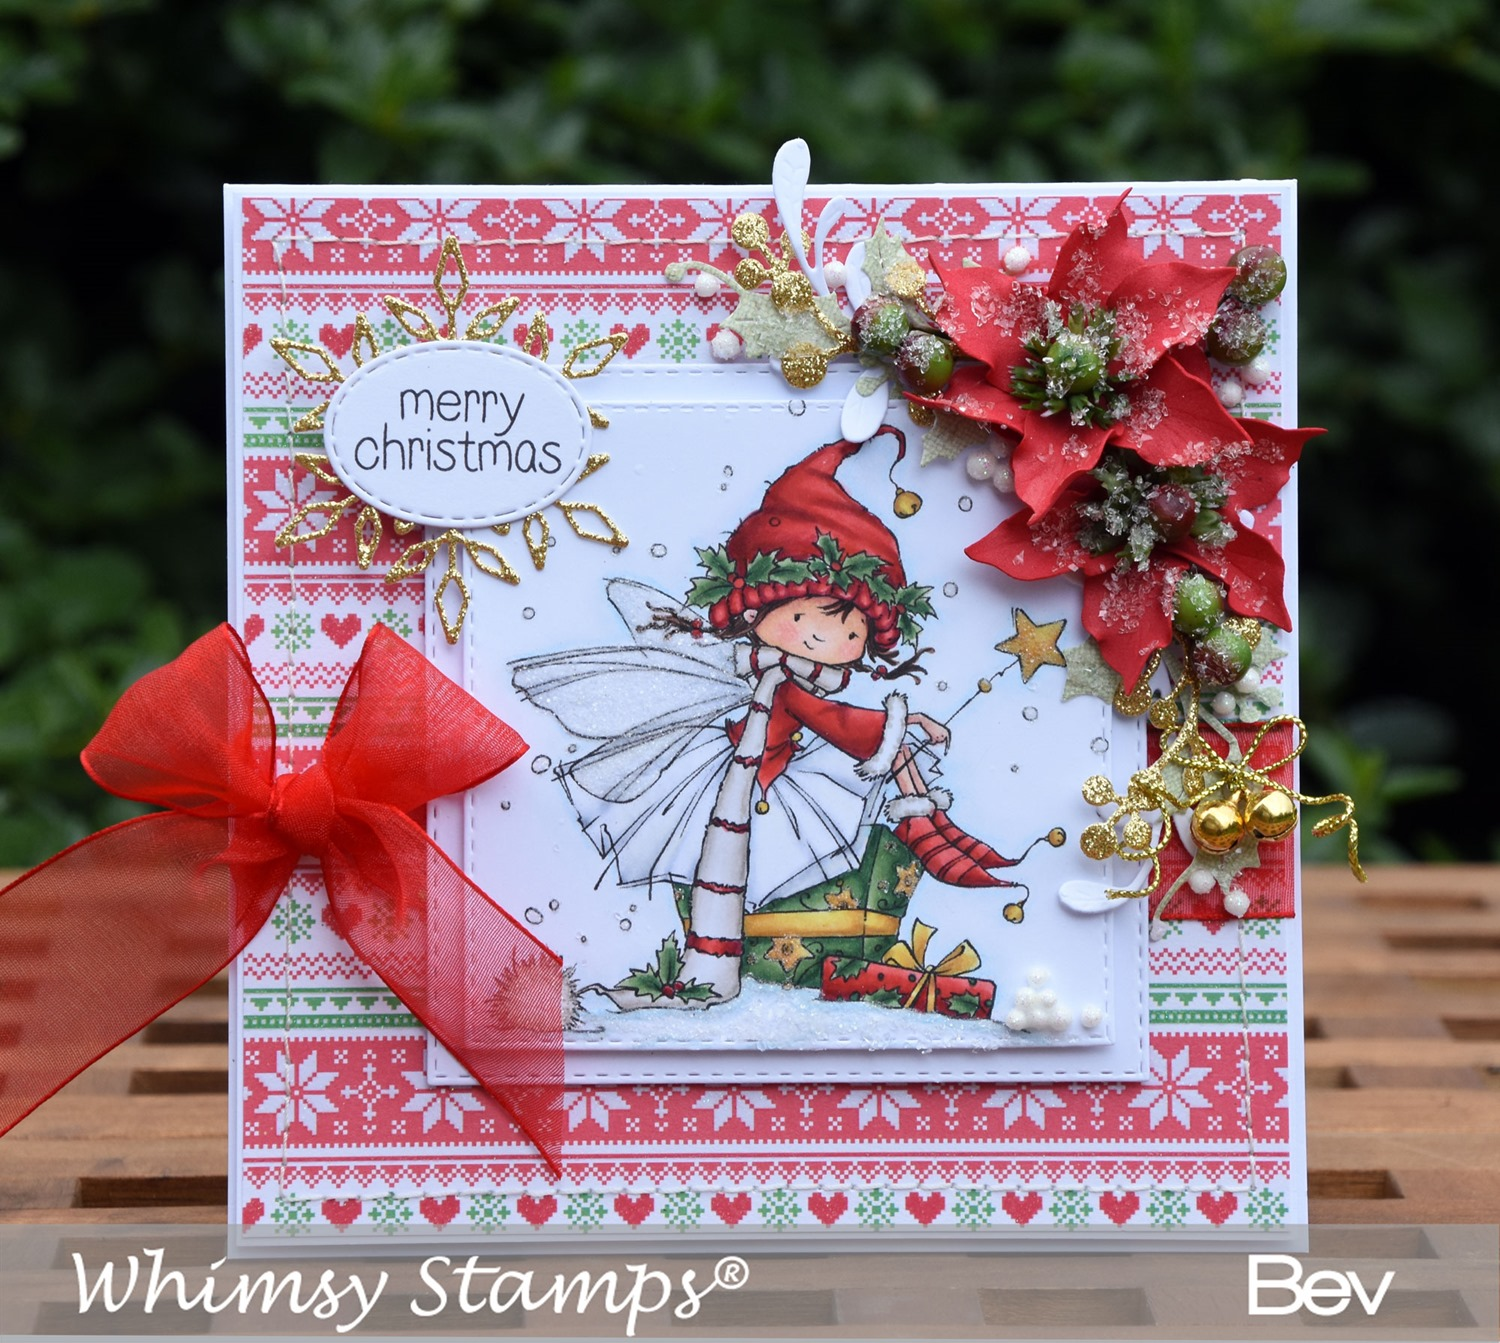 [bev-rochester-whimsy-stamps-christmas-sprite%5B2%5D]